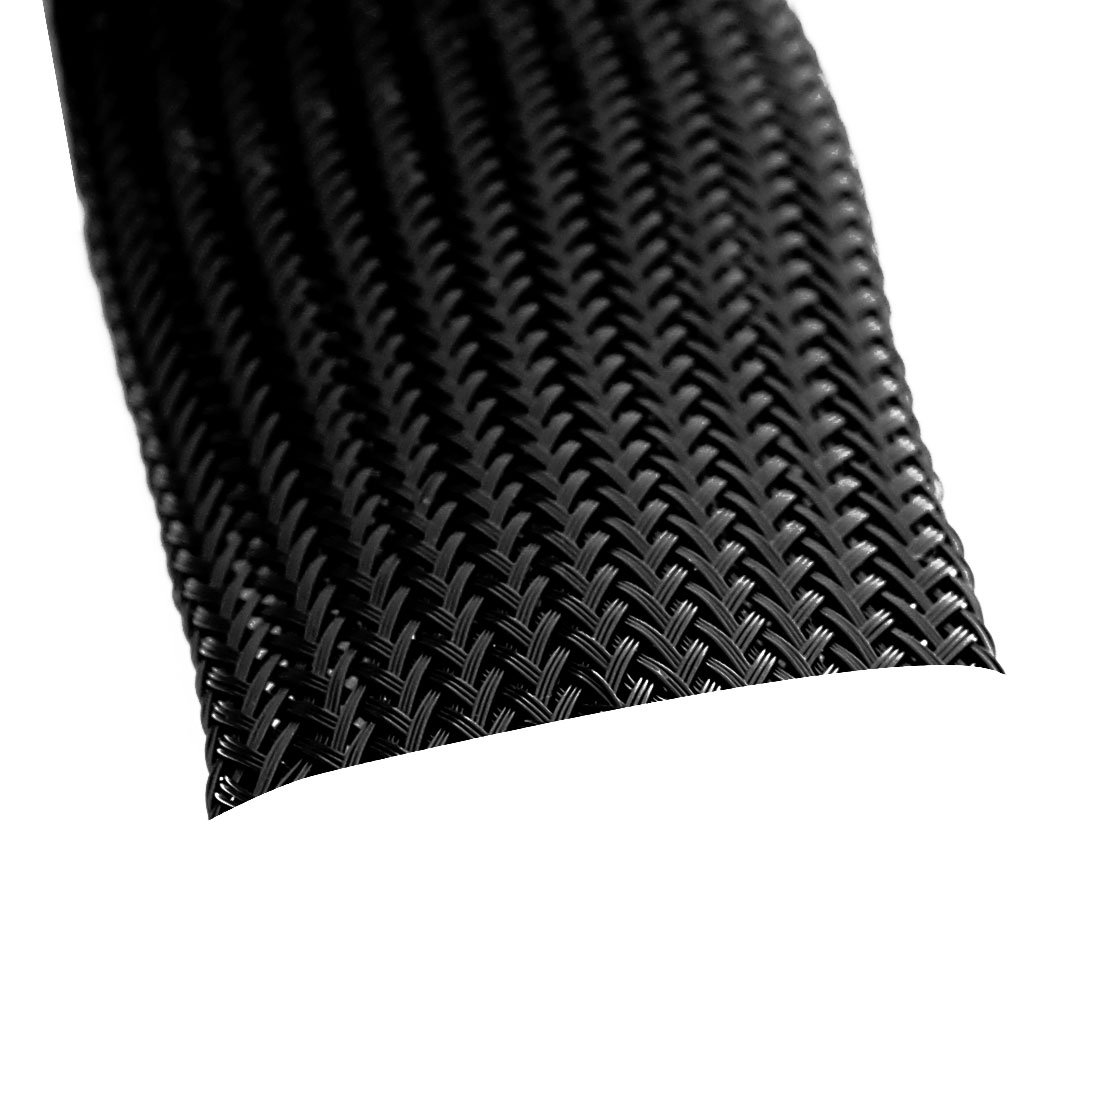 Aexit 1.5M Long Wiring /& Connecting 30mm Wide Nylon Braided Elastic Expandable Sleeving Heat-Shrink Tubing Cable Harness